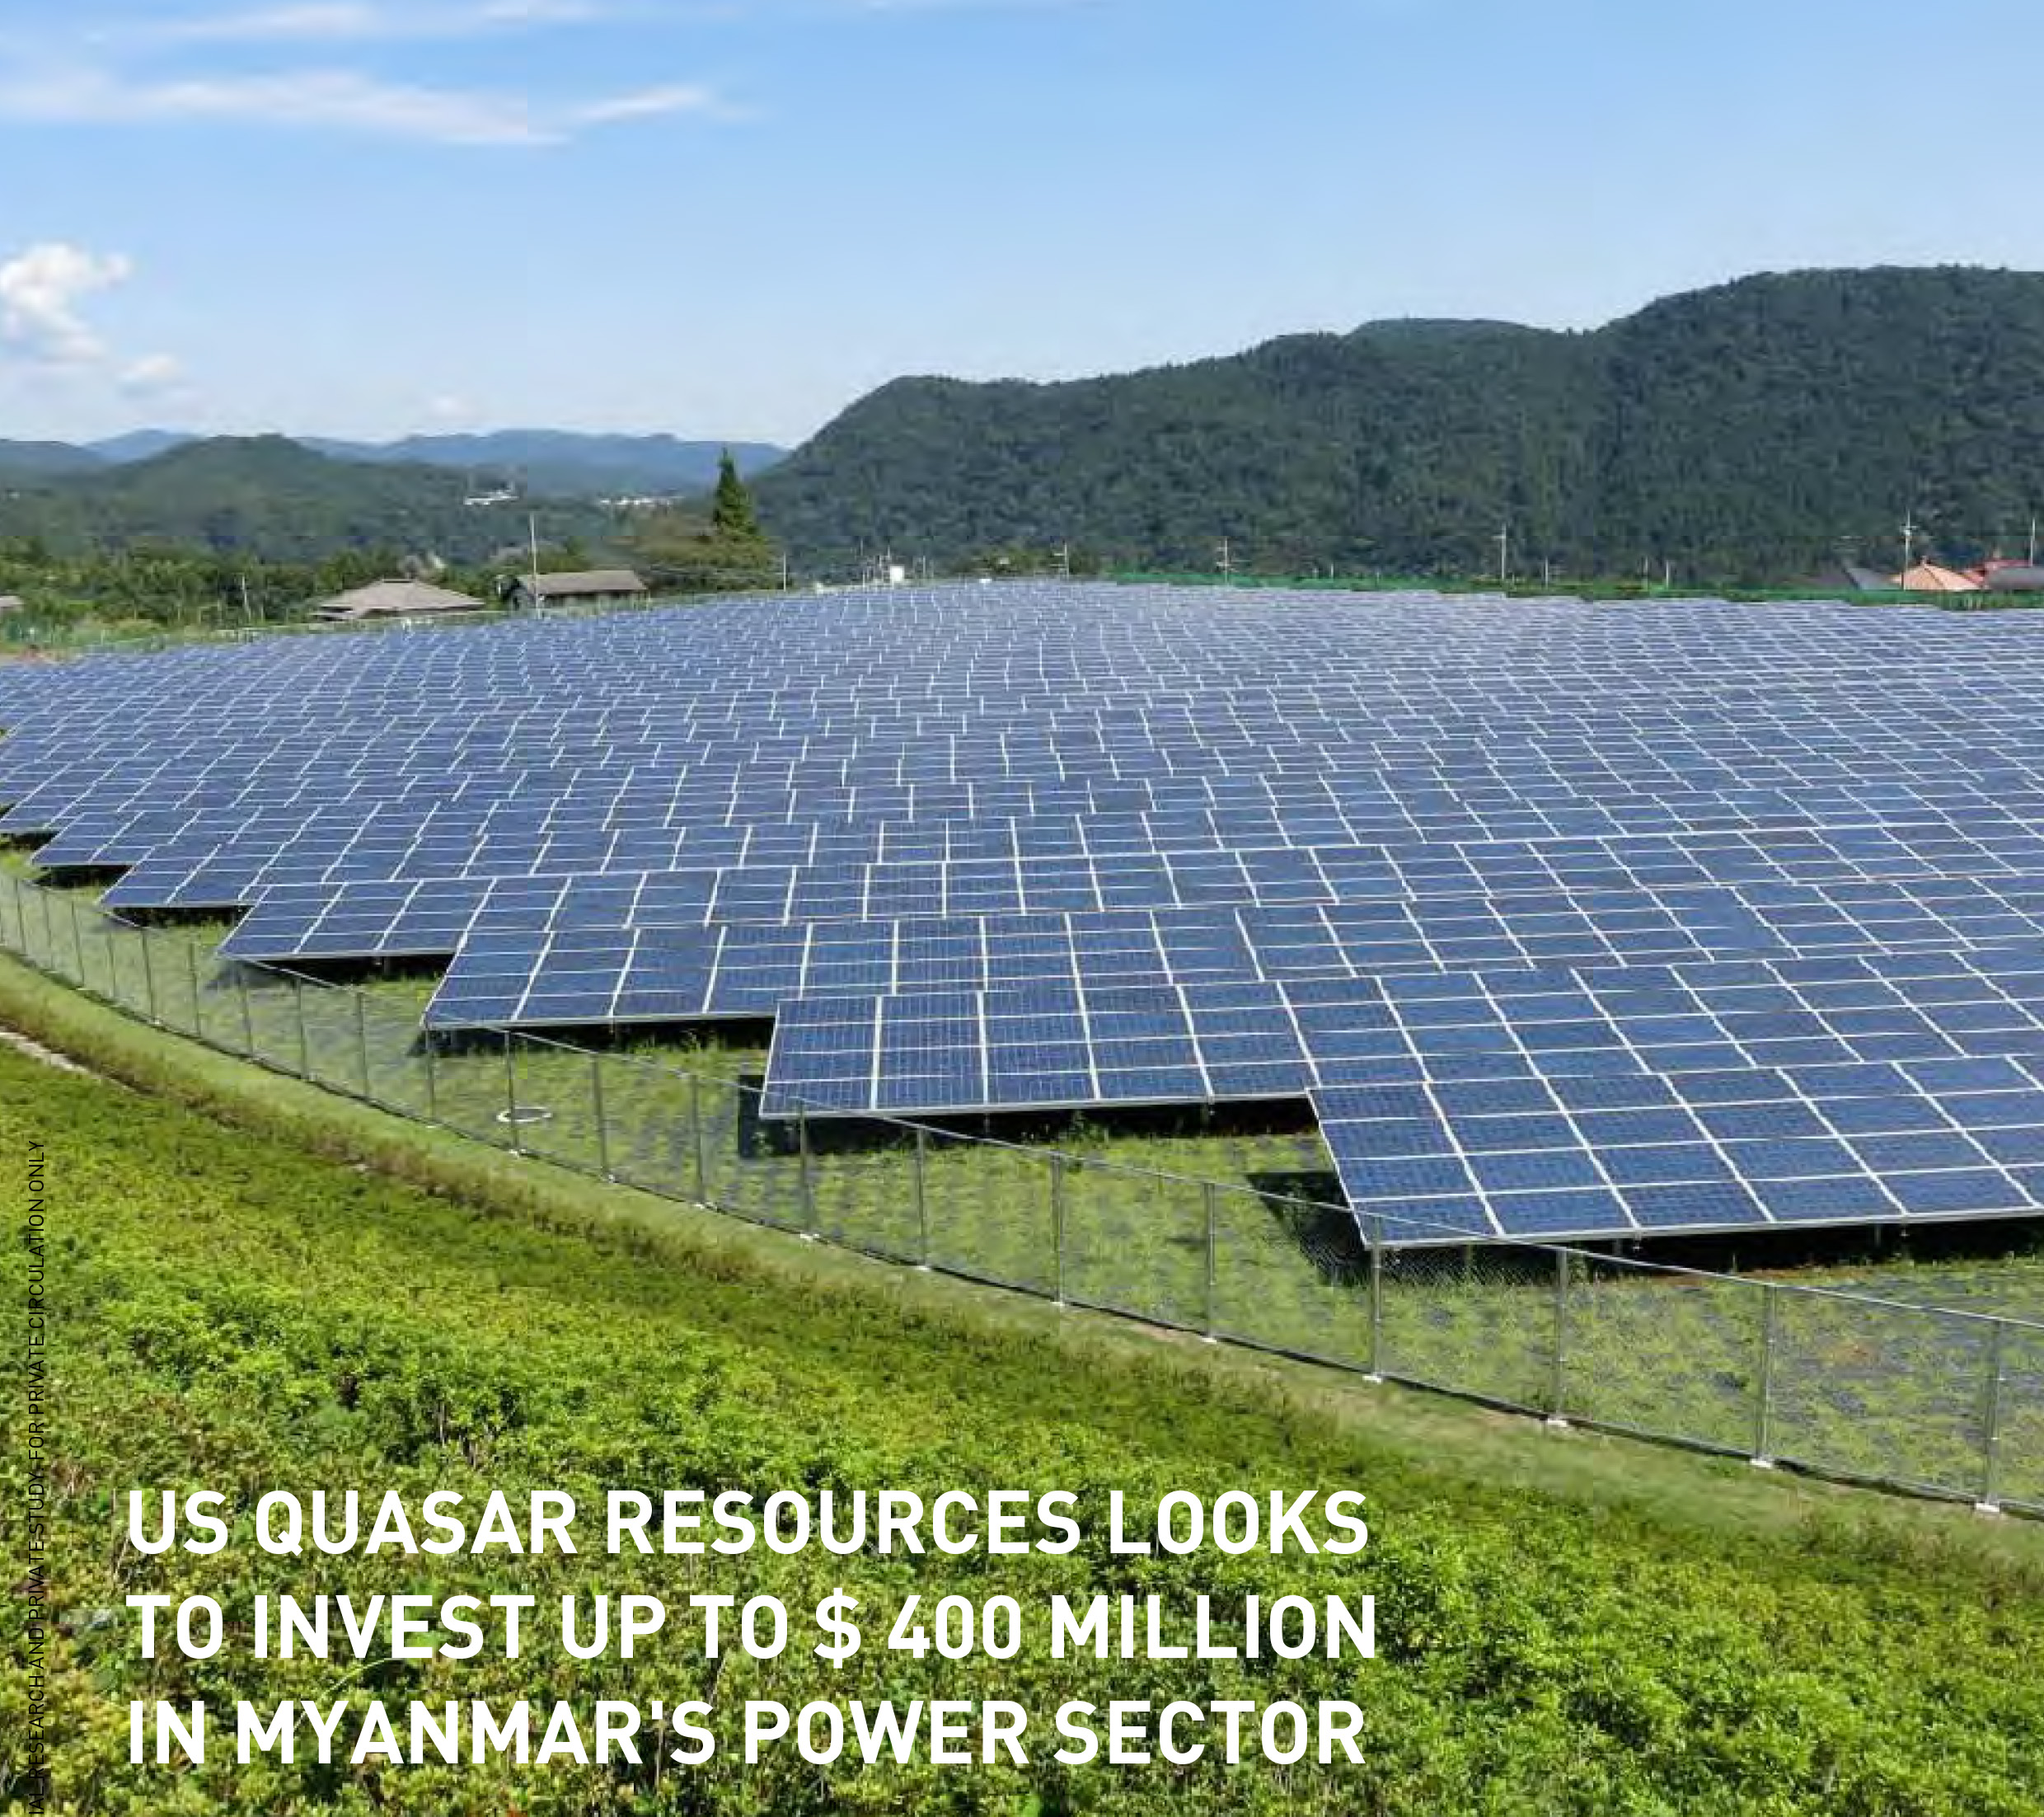 US QUASAR RESOURCES LOOKS TO INVEST UPTO $400 MILLION IN MYANMAR'S POWER SECTOR